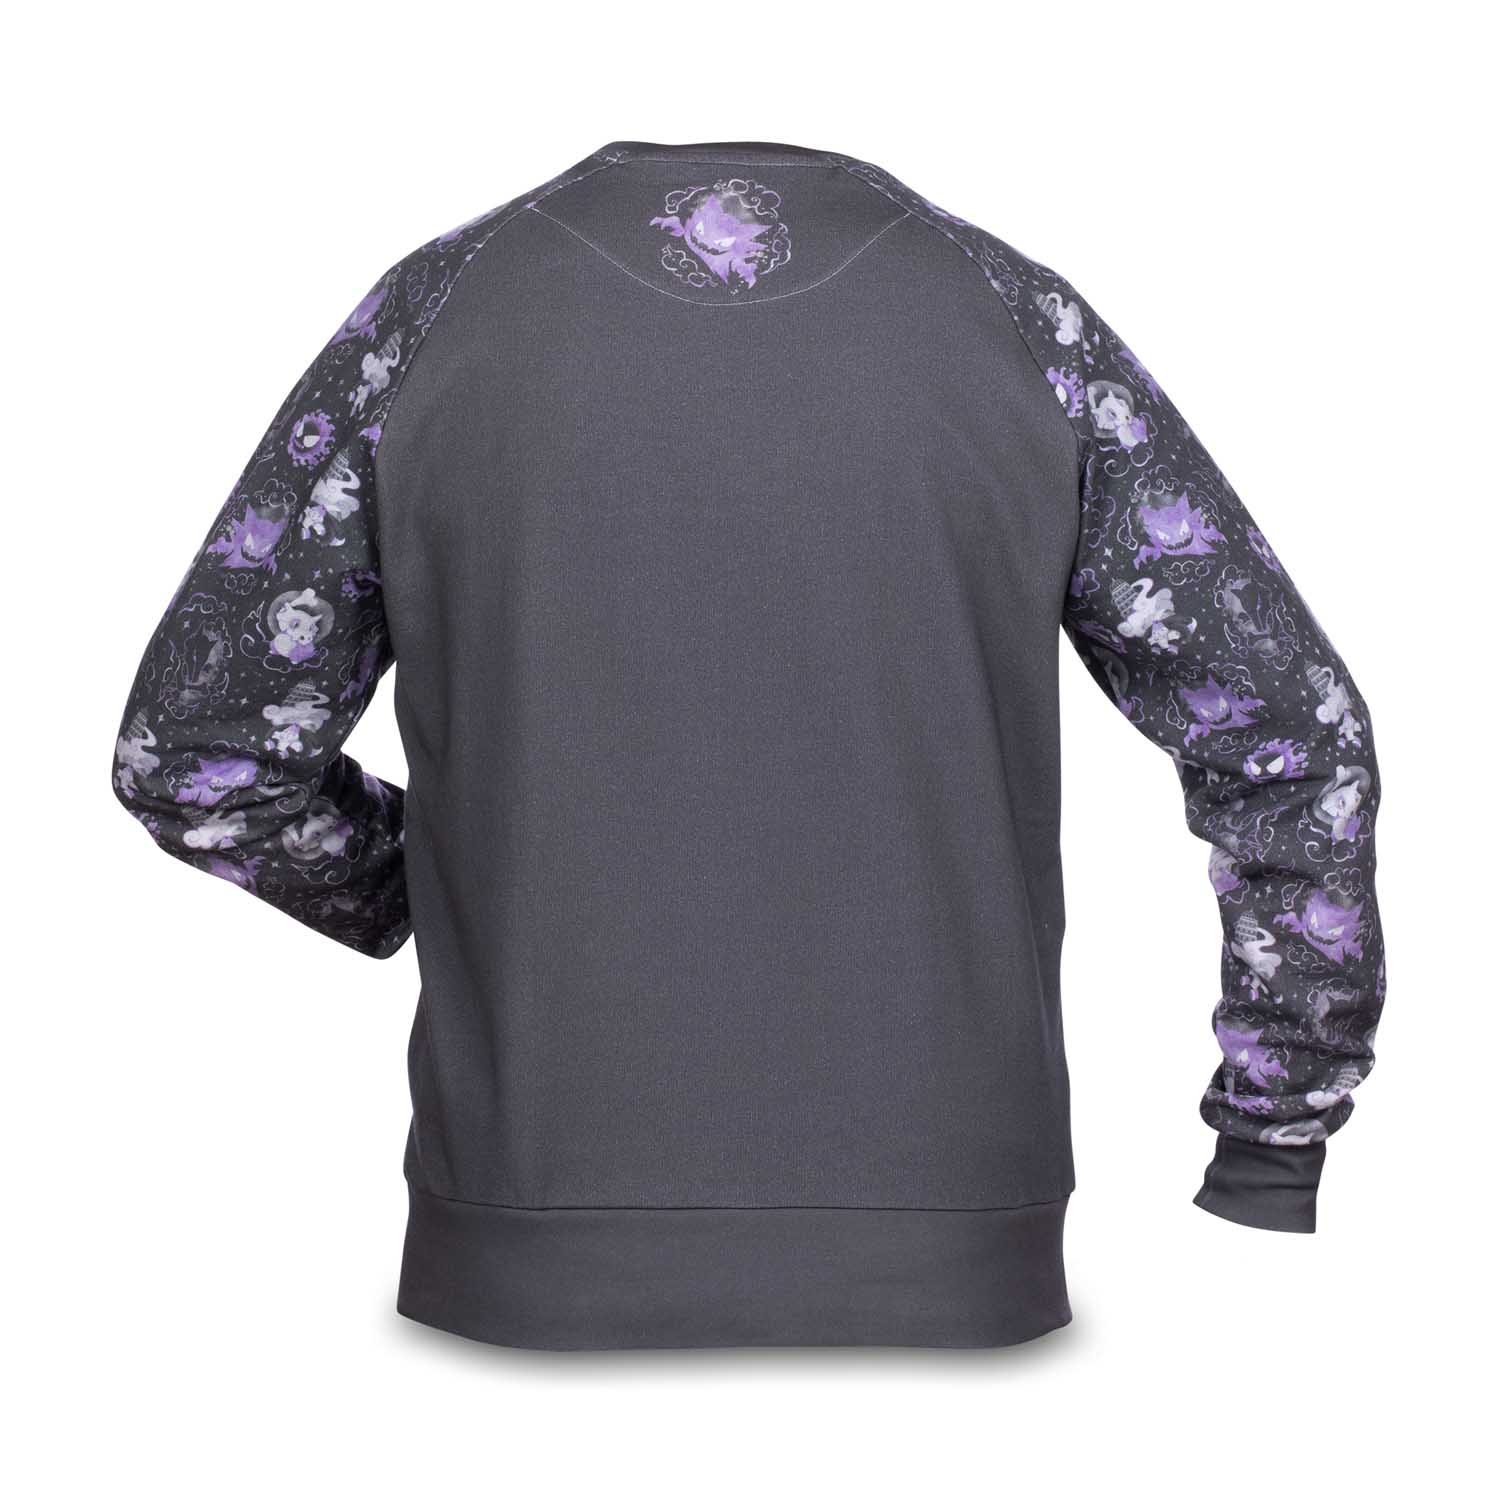 ... Image for Lavender Town Crew Neck Sweatshirt - Adult from Pokemon  Center ... a5560ae2c7